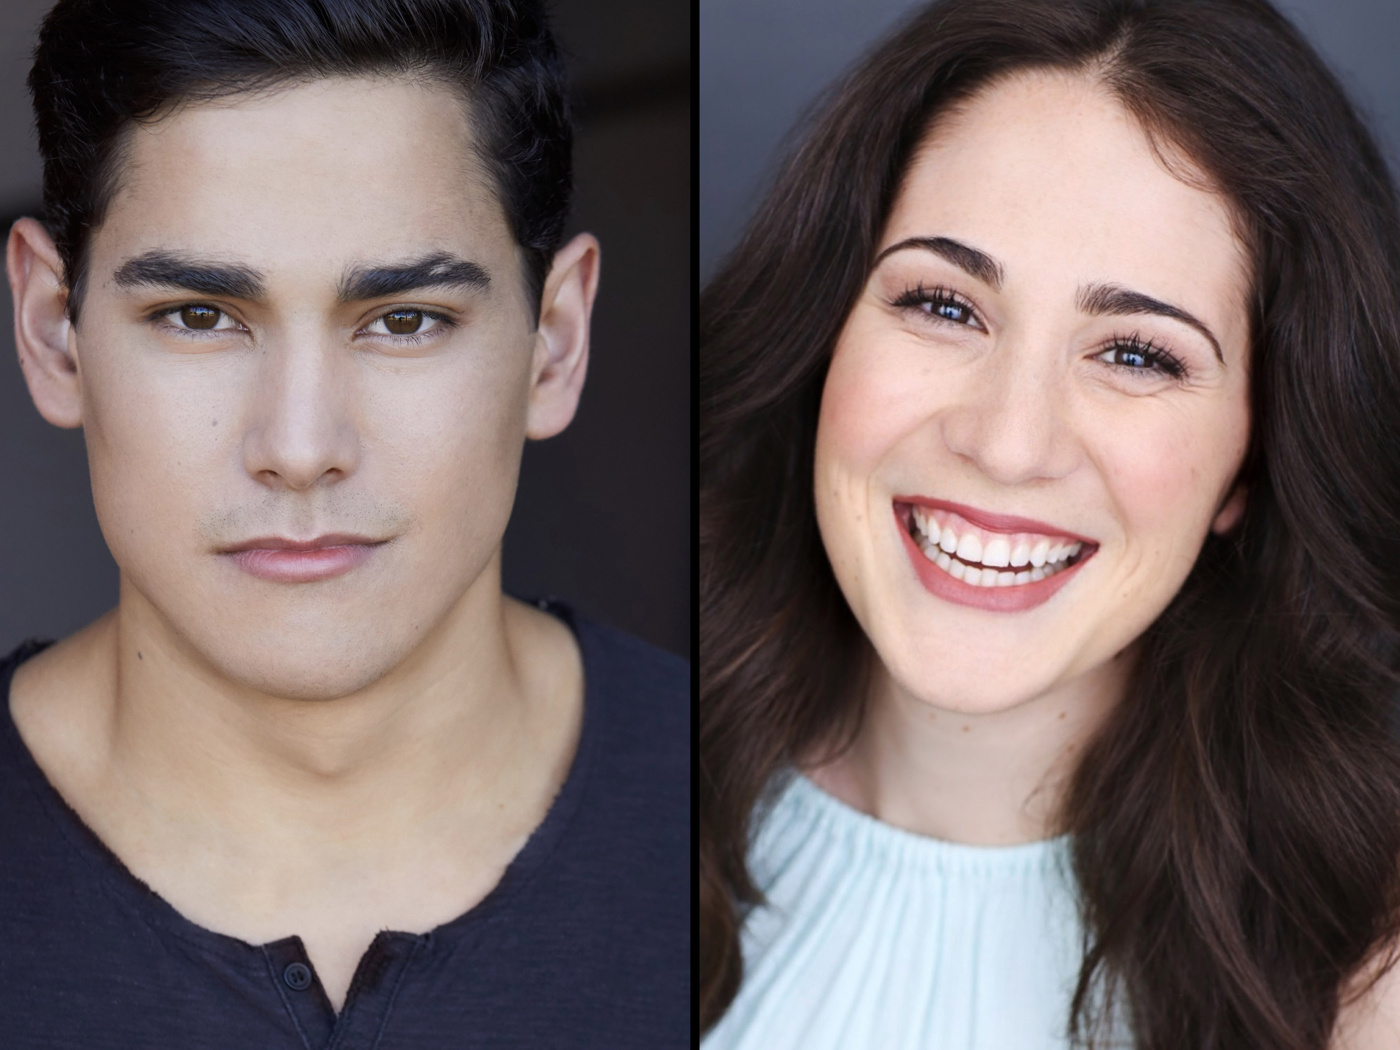 It's Tour Week on #LiveAtFive! Get to Know the Stars Taking Hello, Dolly!, A Bronx Tale & More on the Road